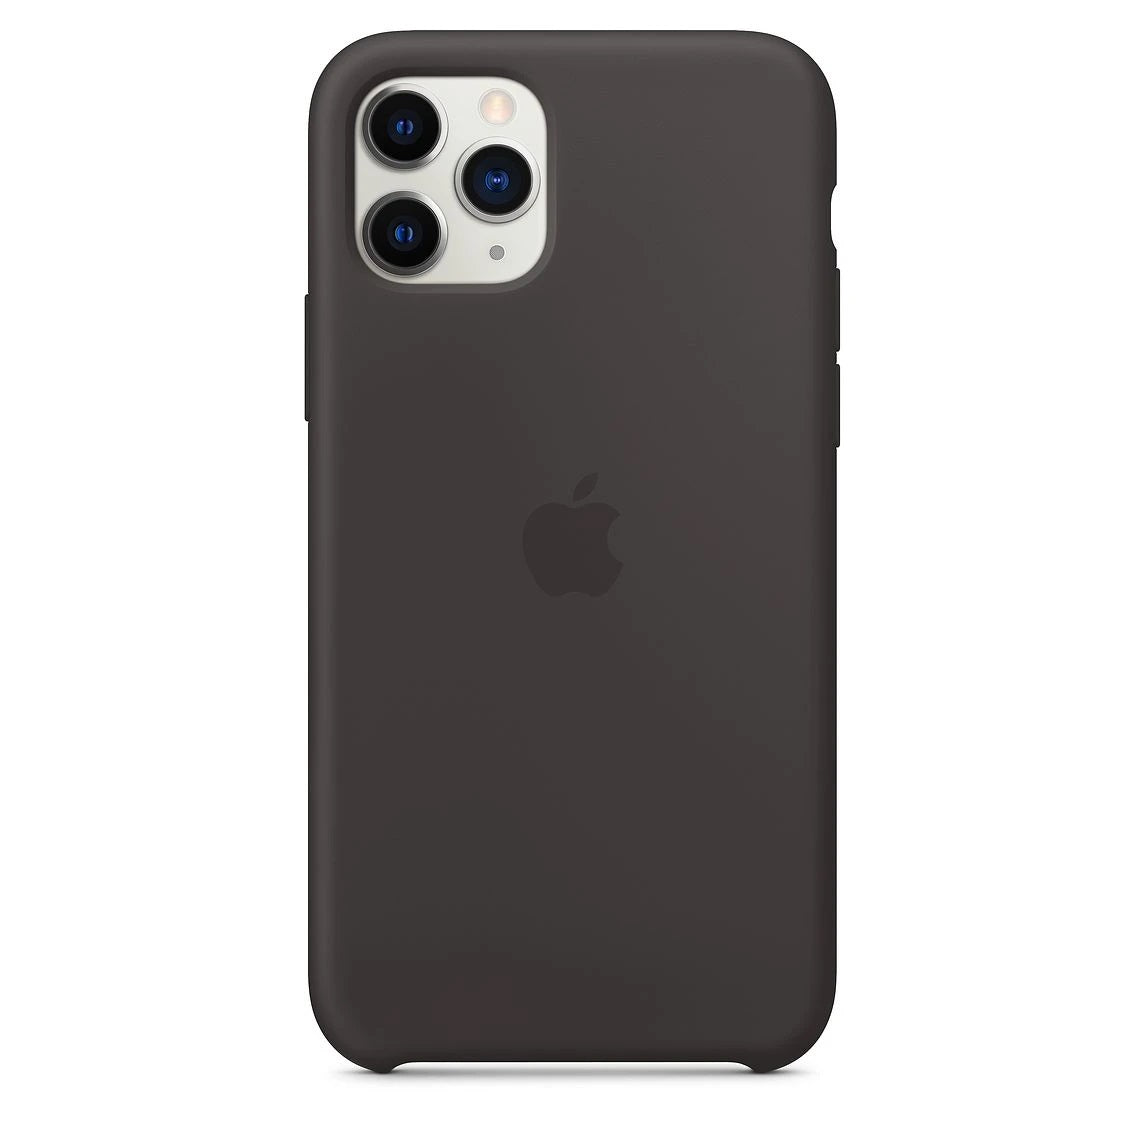 Silicon Case For iPhone 11 Pro - Black - Mobilegadgets360